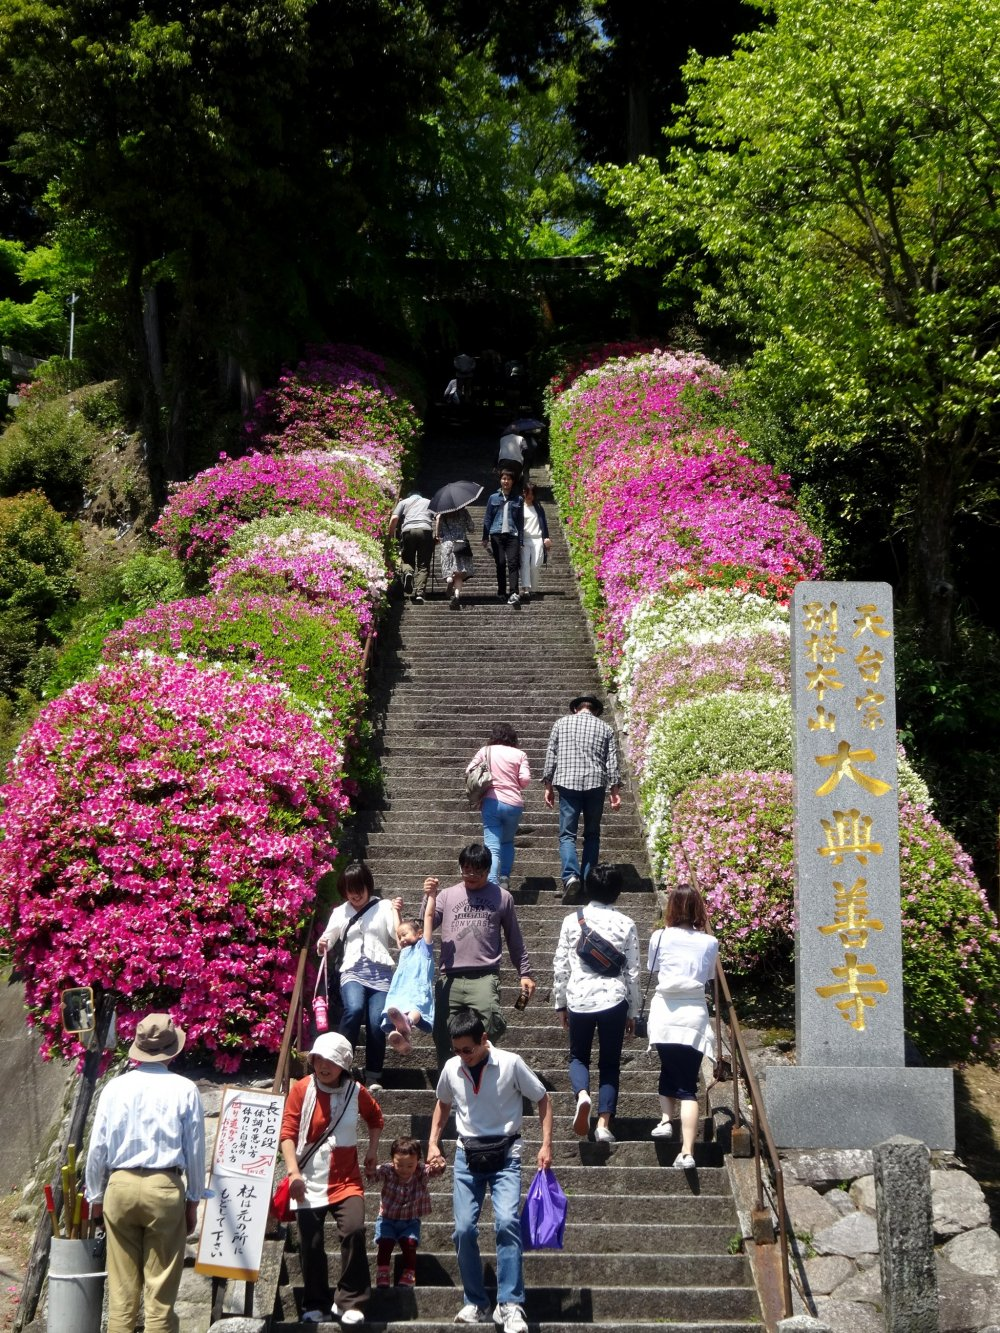 Even the temple's main staircase is lined with azaleas